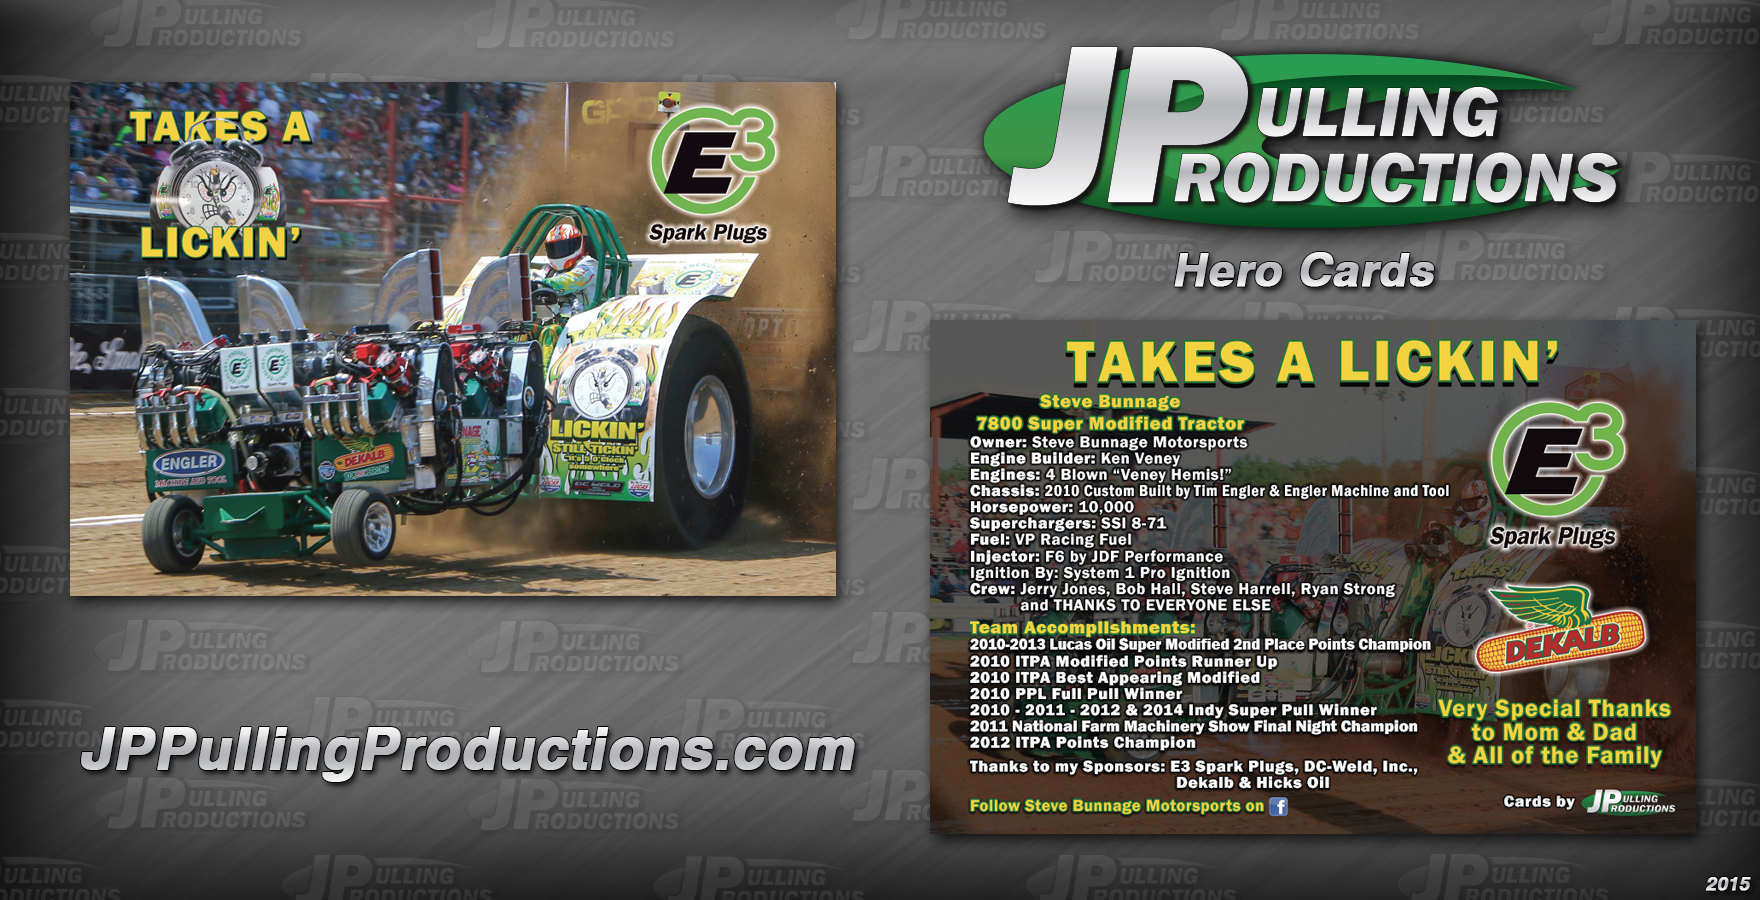 Hero Cards – JP Pulling Productions